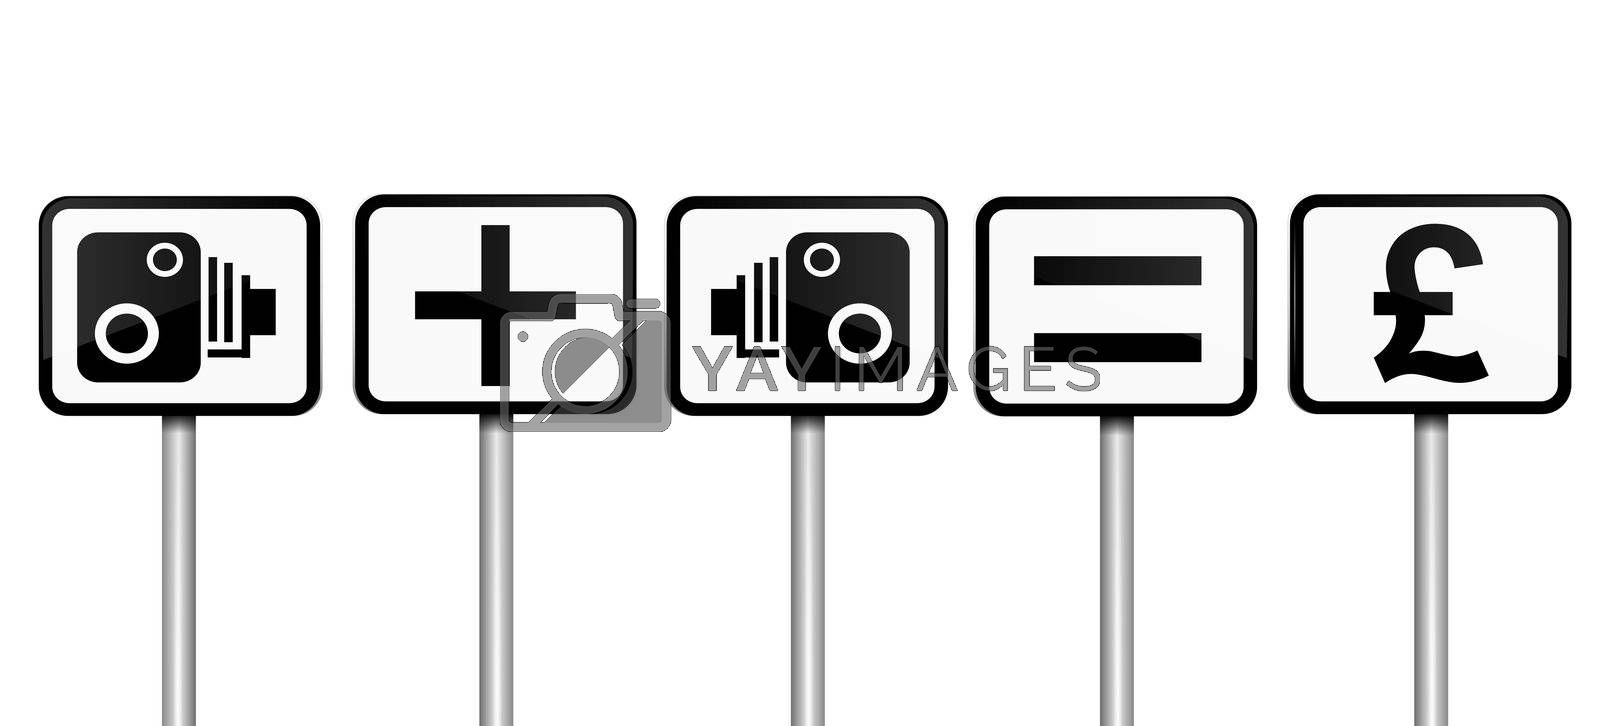 Illustration depicting road signs with speed camera financial gain concept. White background.